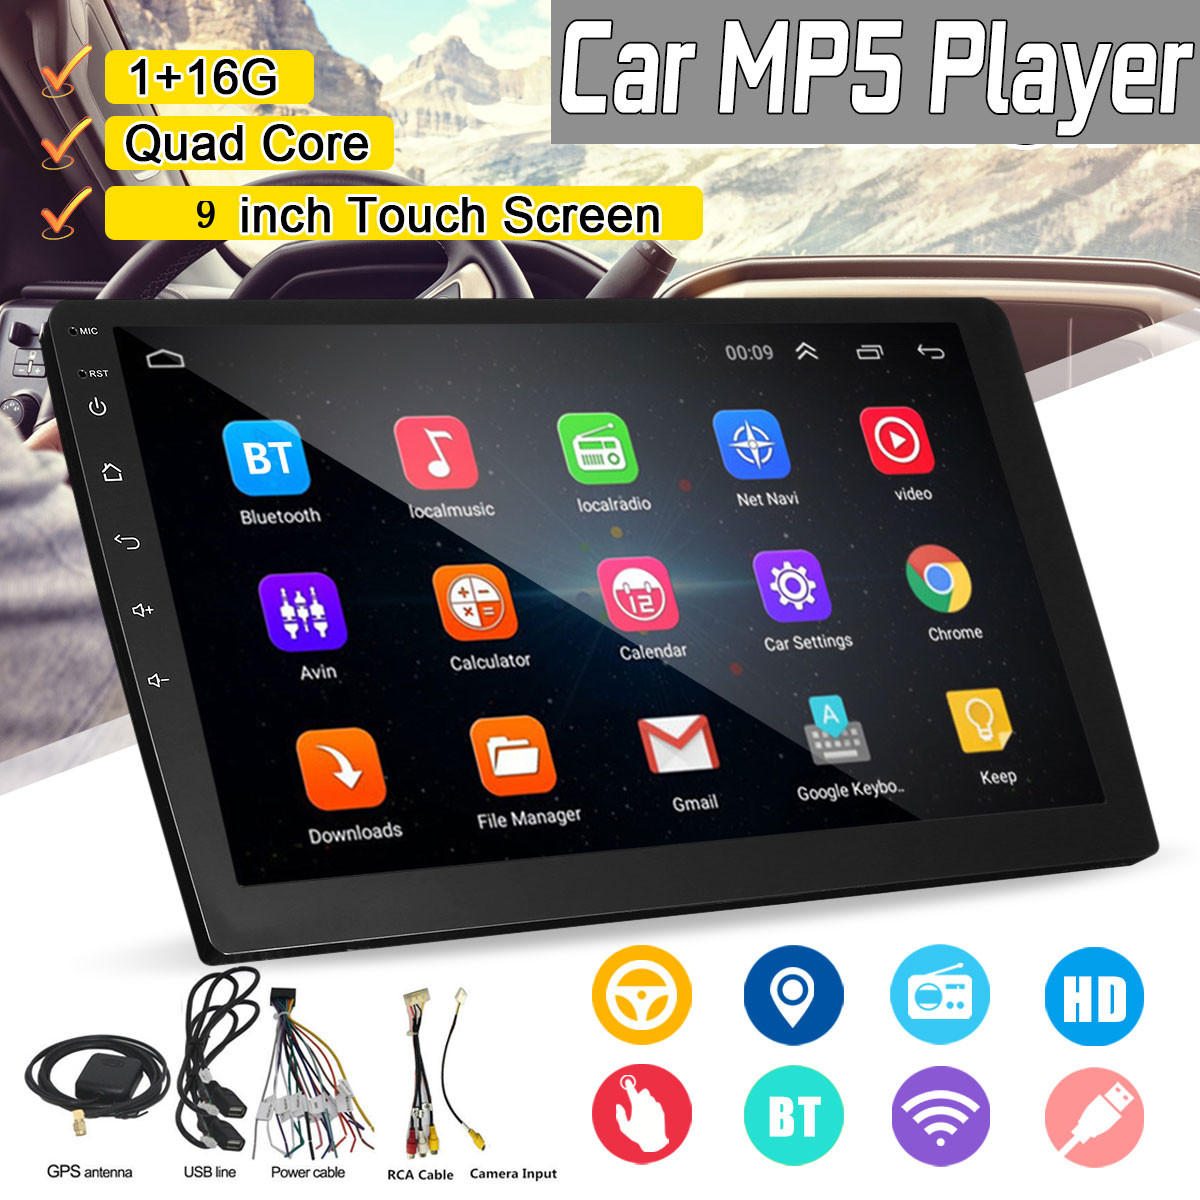 9 Inch 2 DIN 1+16G Car MP5 Player Quad Core Stereo Radio IPS Touch Screen Stereo Radio Car Radio Multimidia support DAB GPS DVR